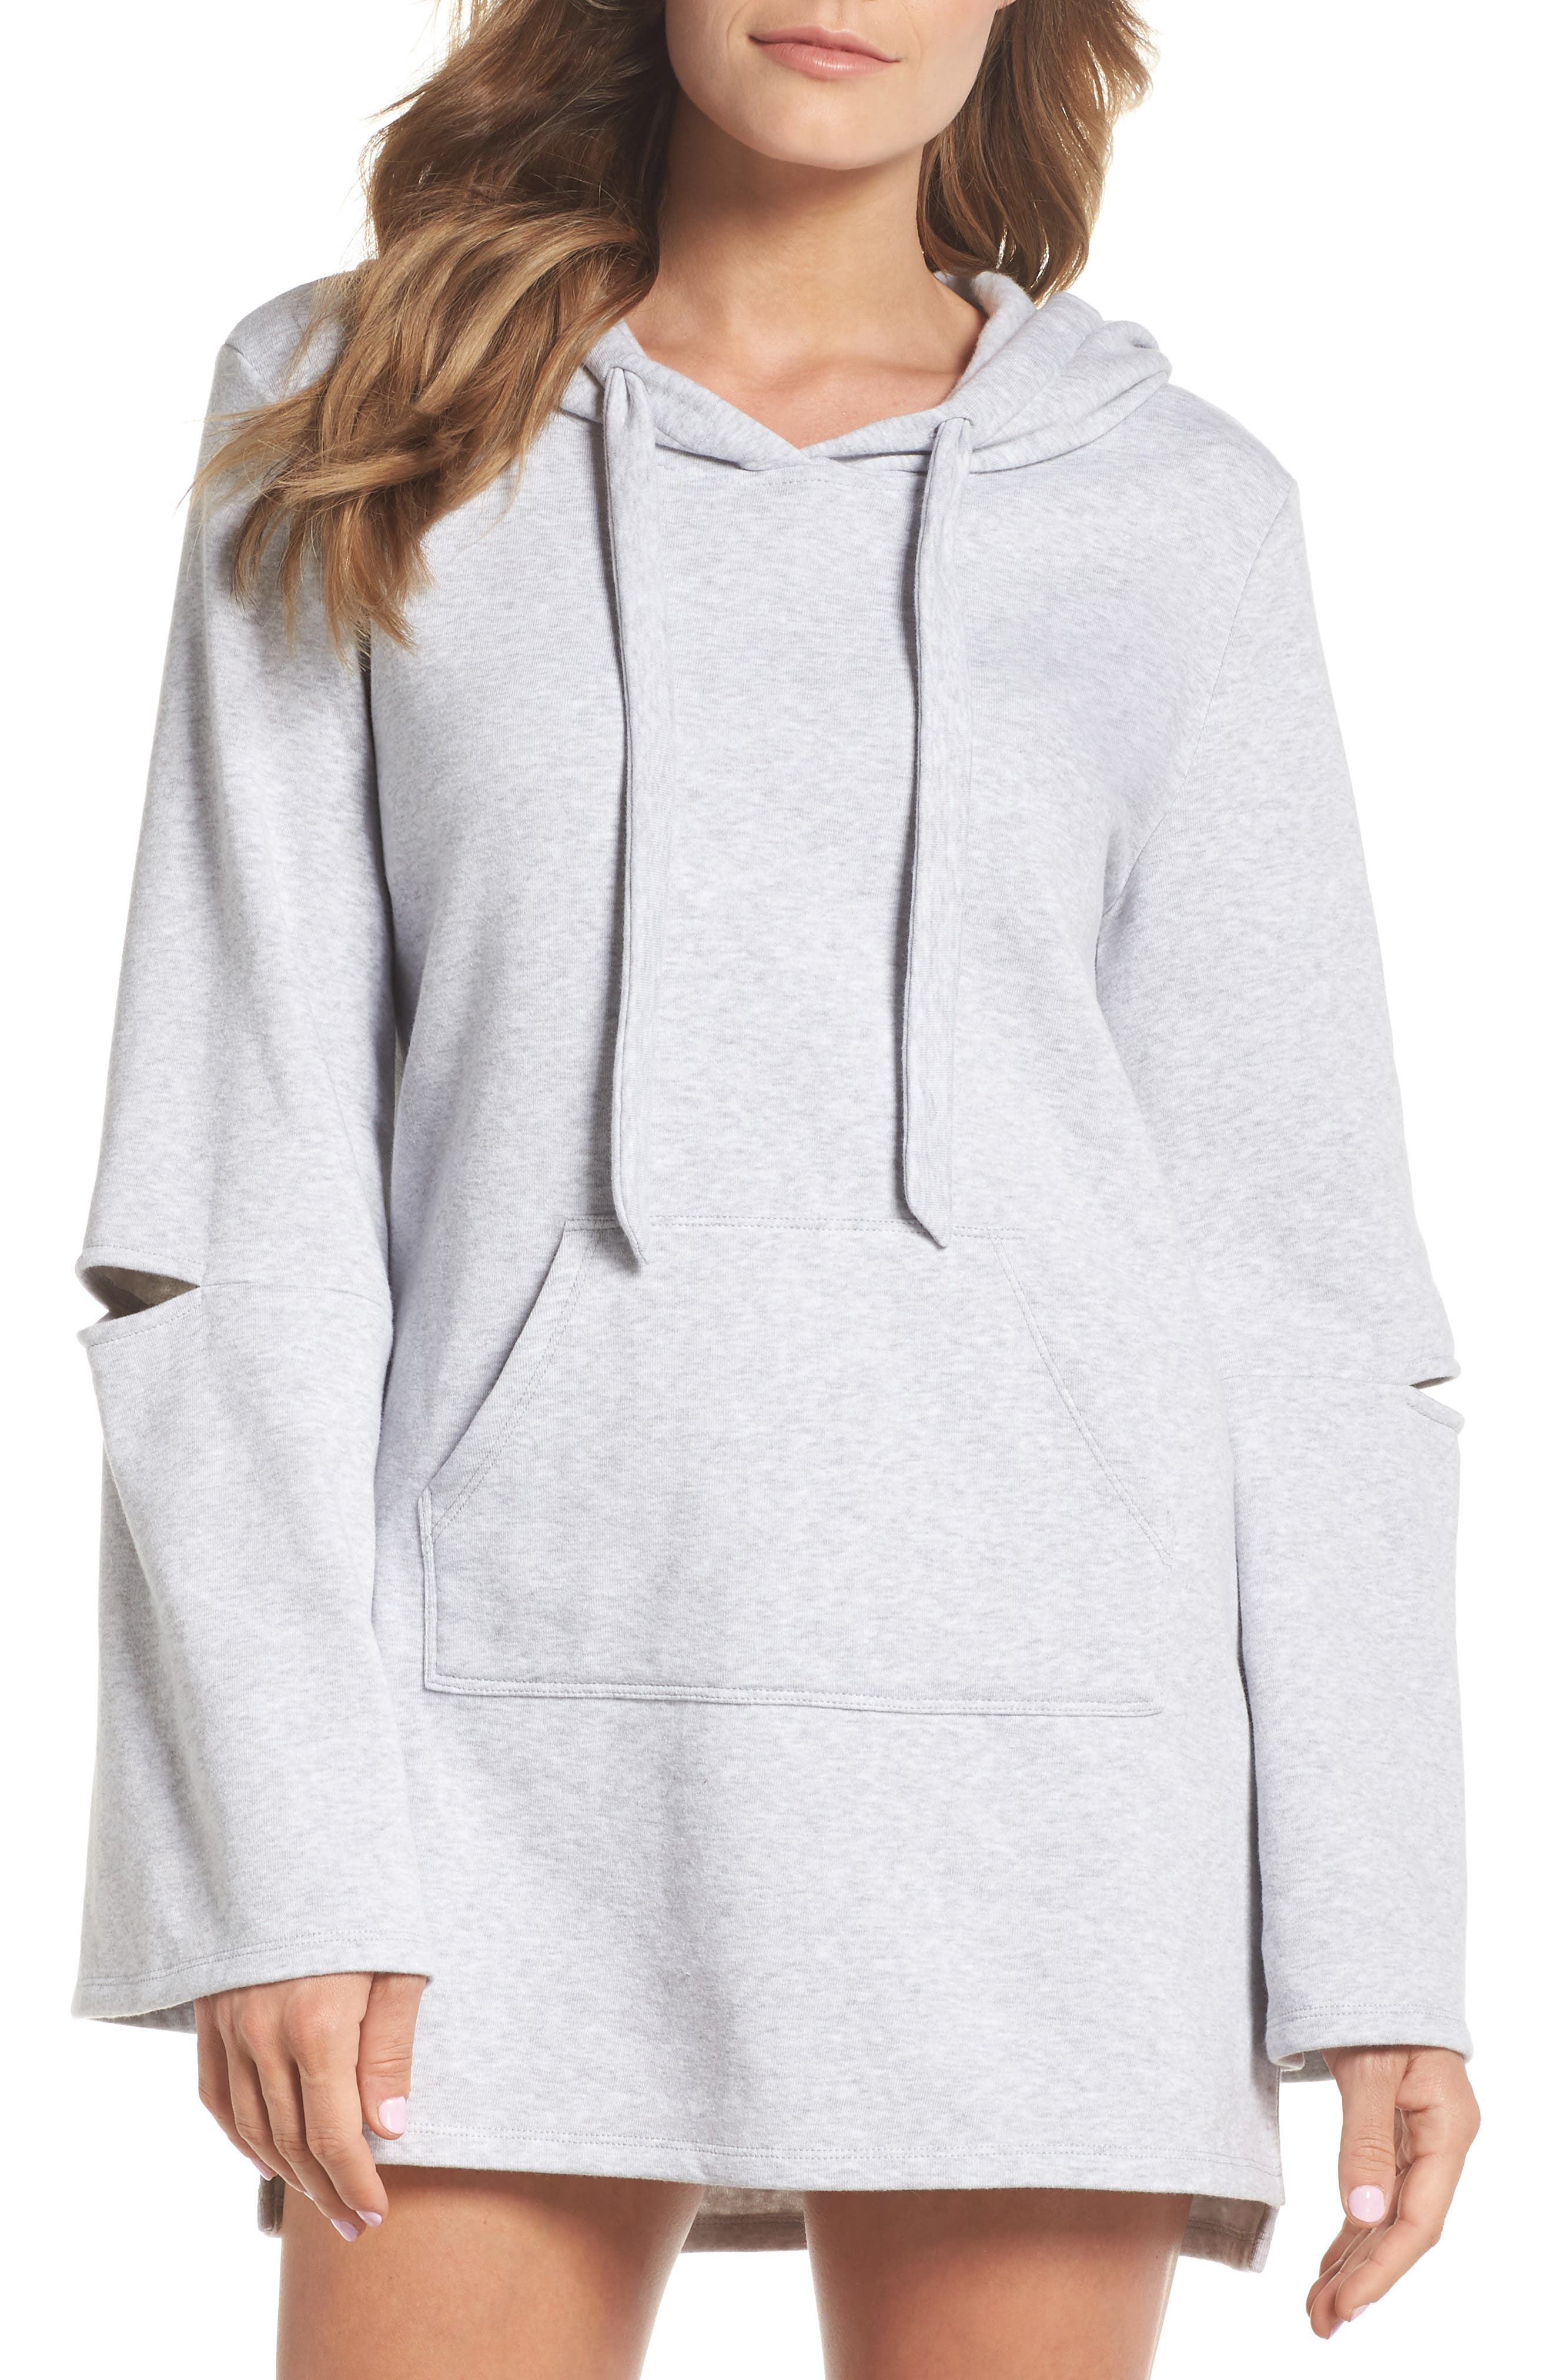 All The Stops Hoodie,                             Main thumbnail 1, color,                             030